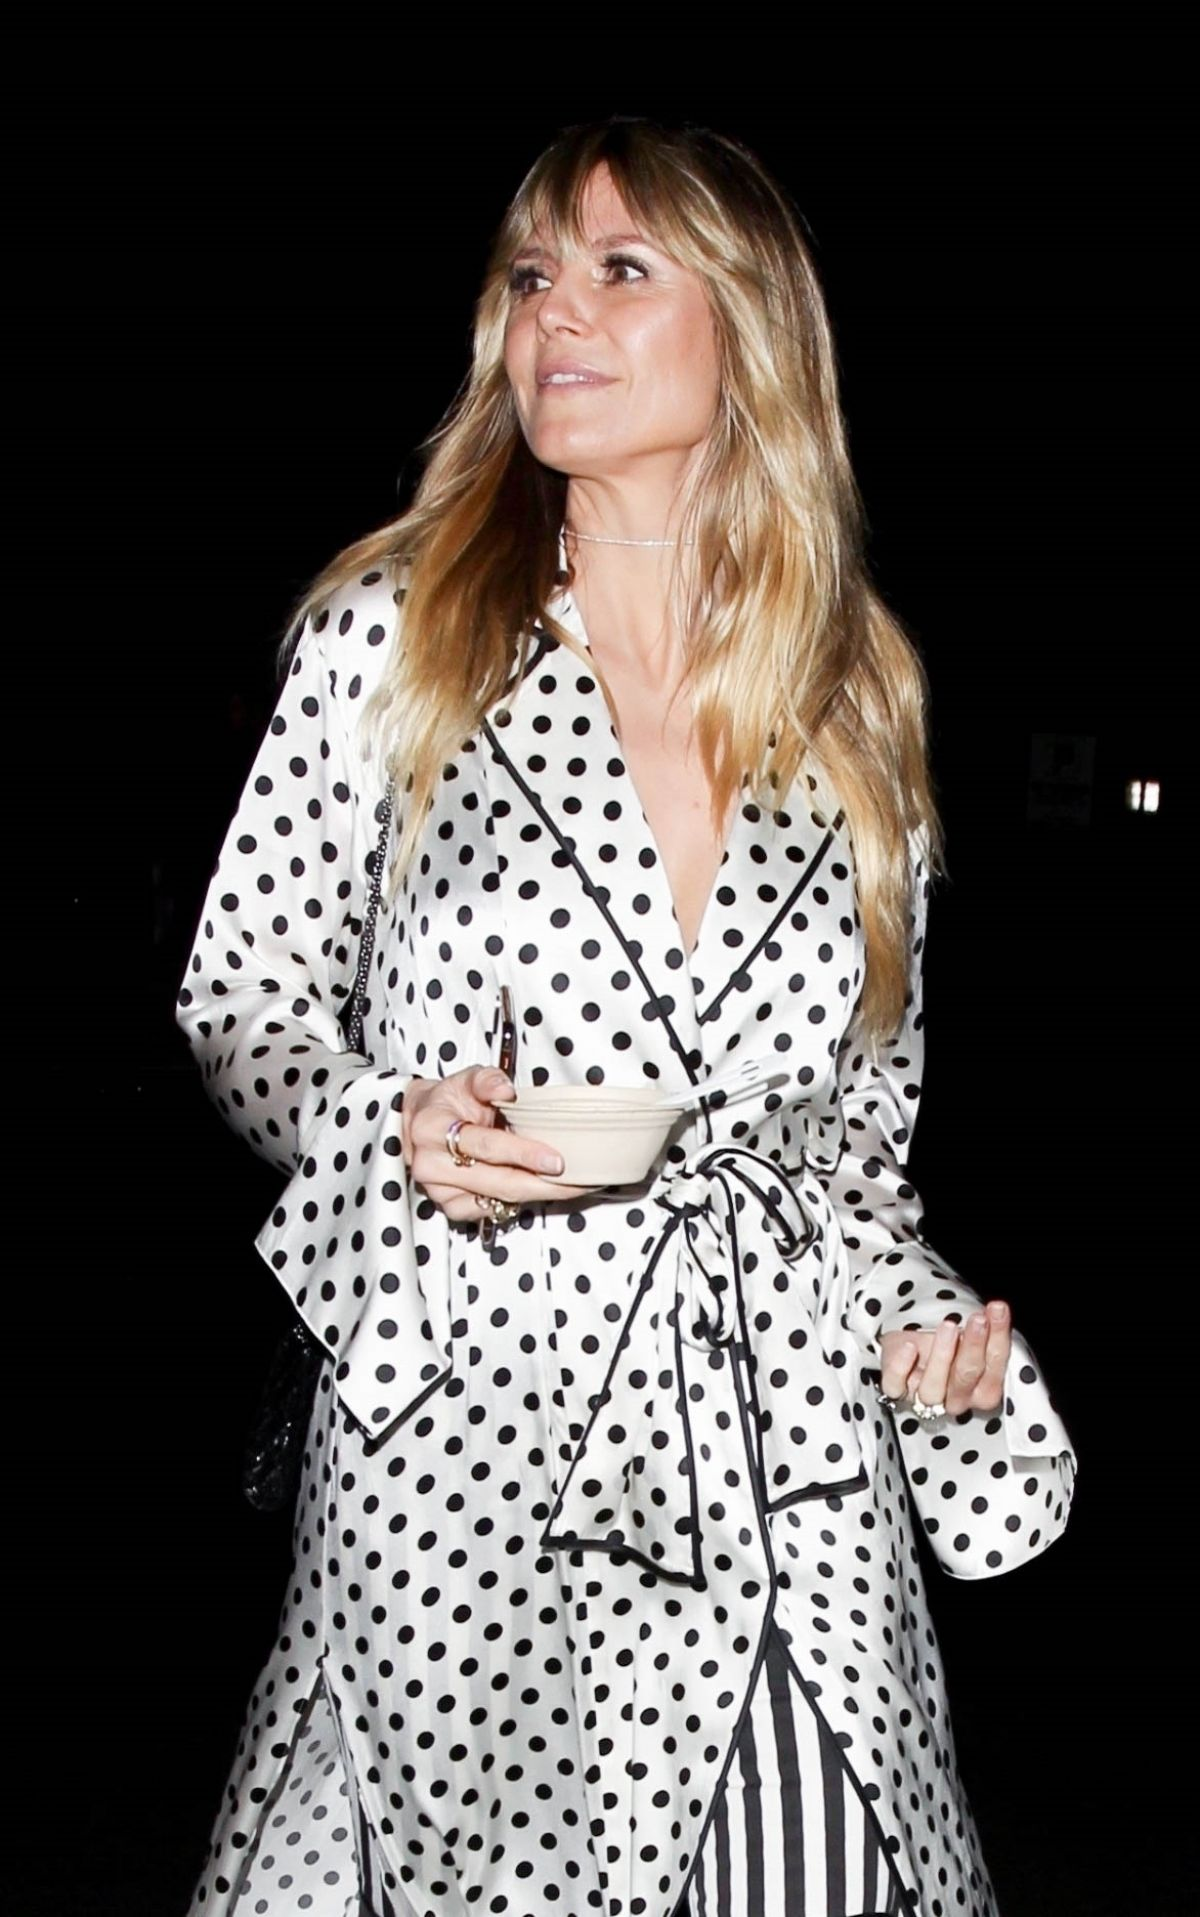 All The Girls Standing In The Line For The Bathroom: HEIDI KLUM Leaves Billie Eilish Album Release Party In Los